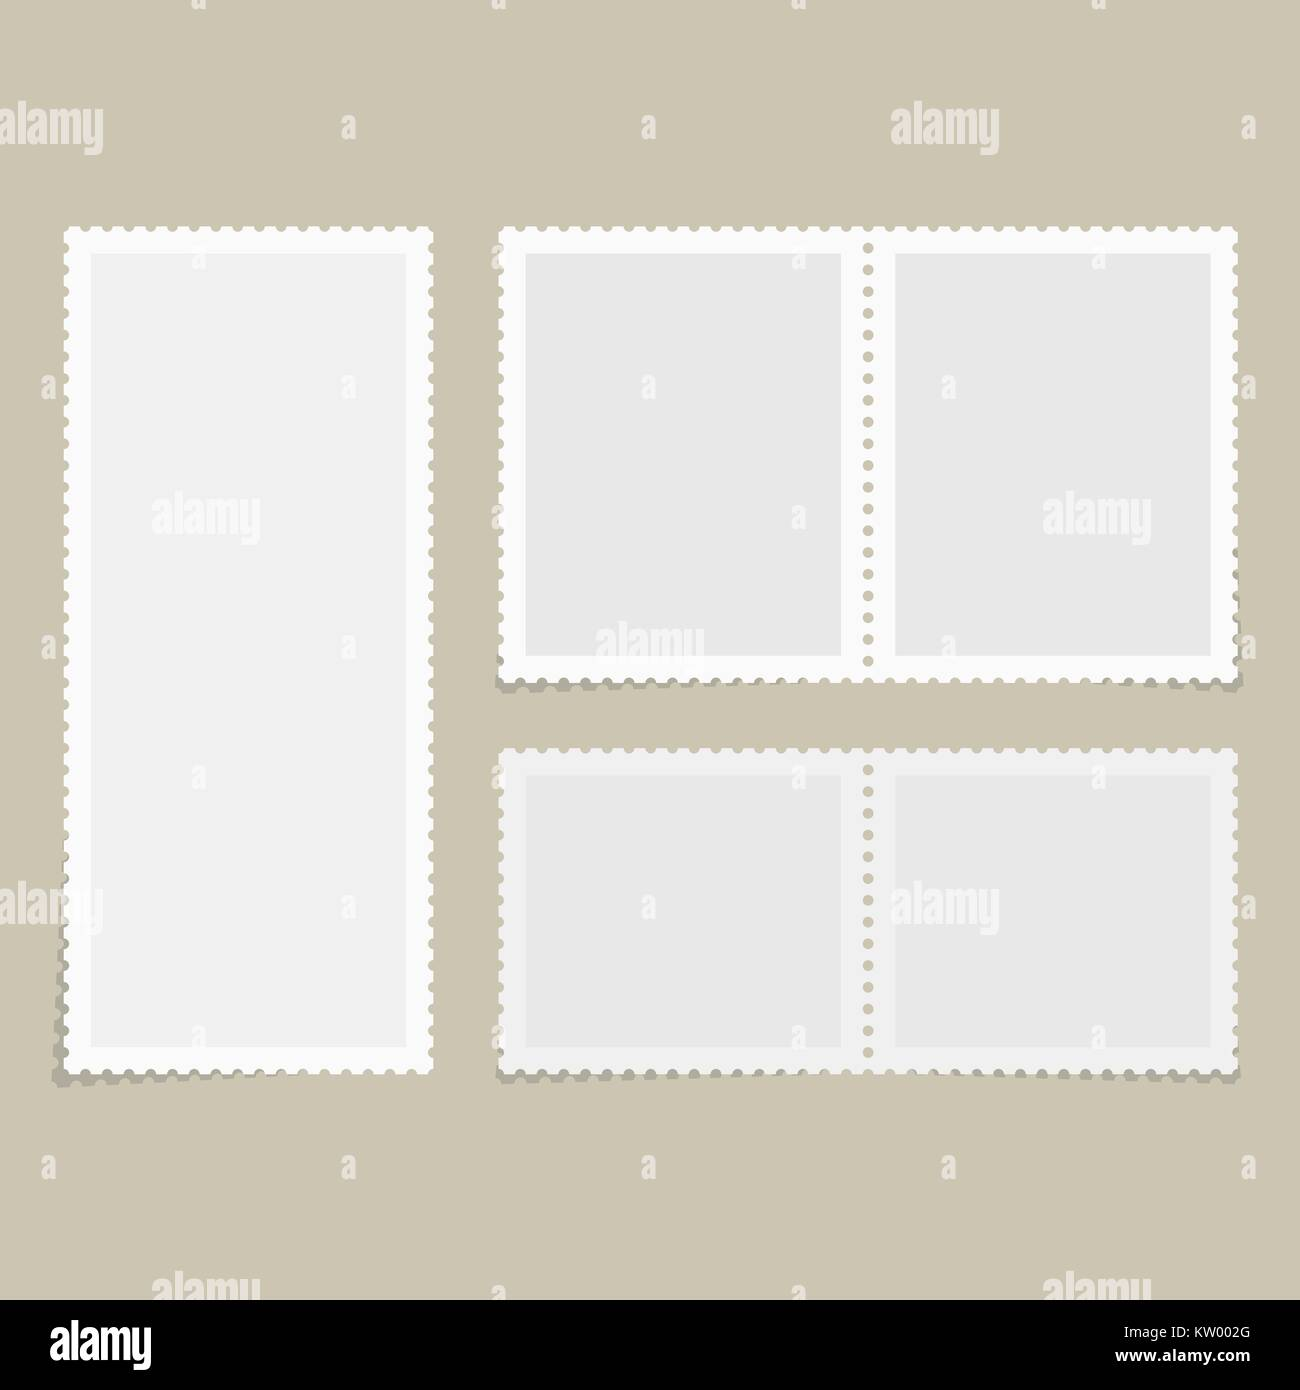 Postage stamps for postcard - Stock Vector